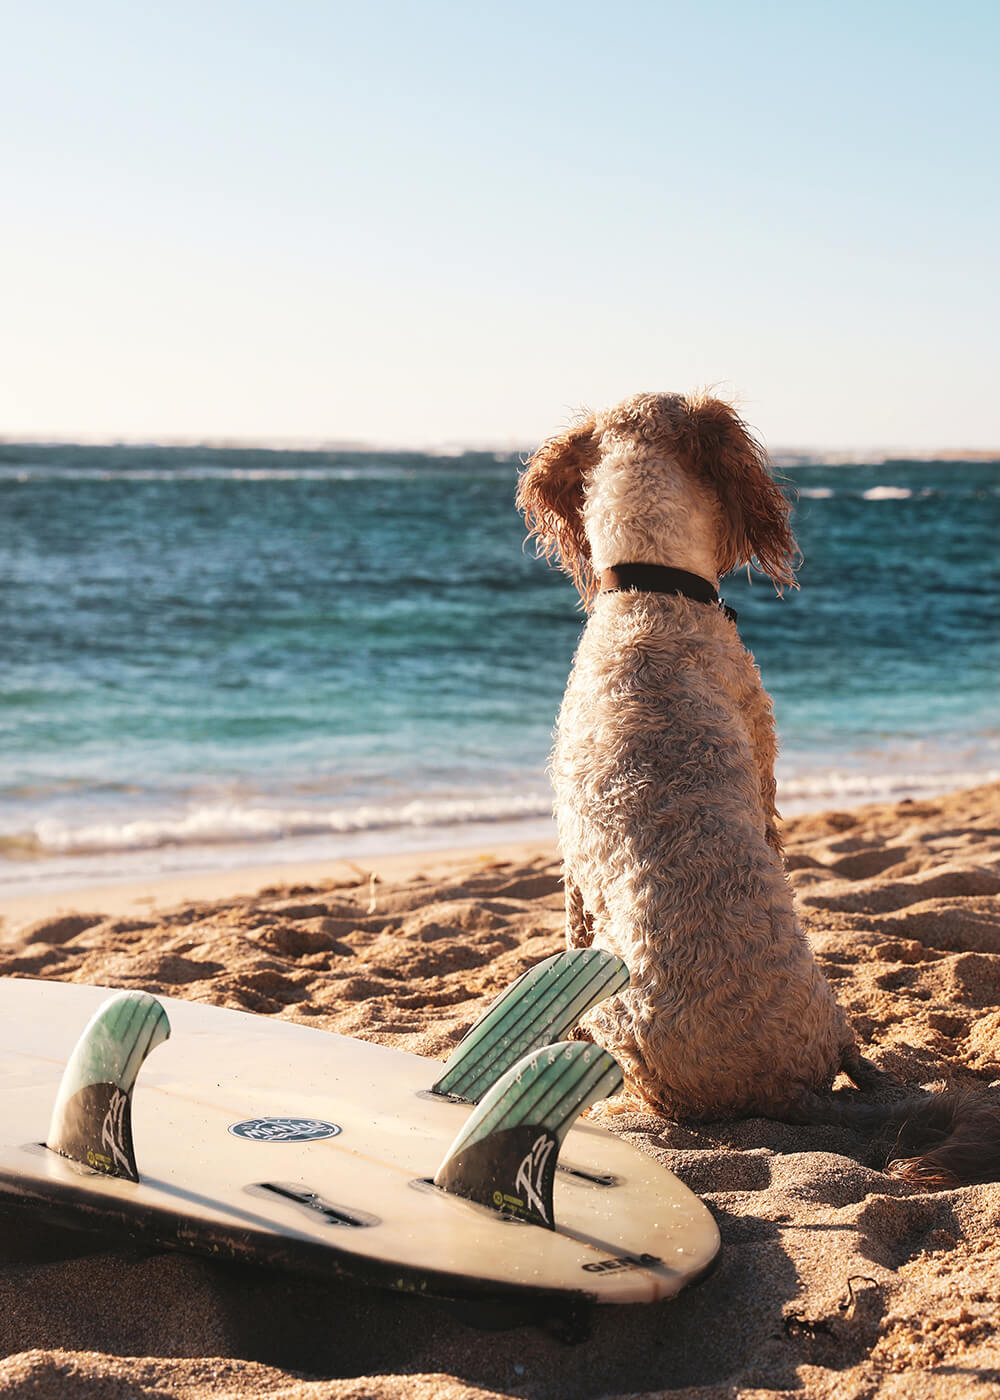 Image of a dog at the beach by Salty Travellers